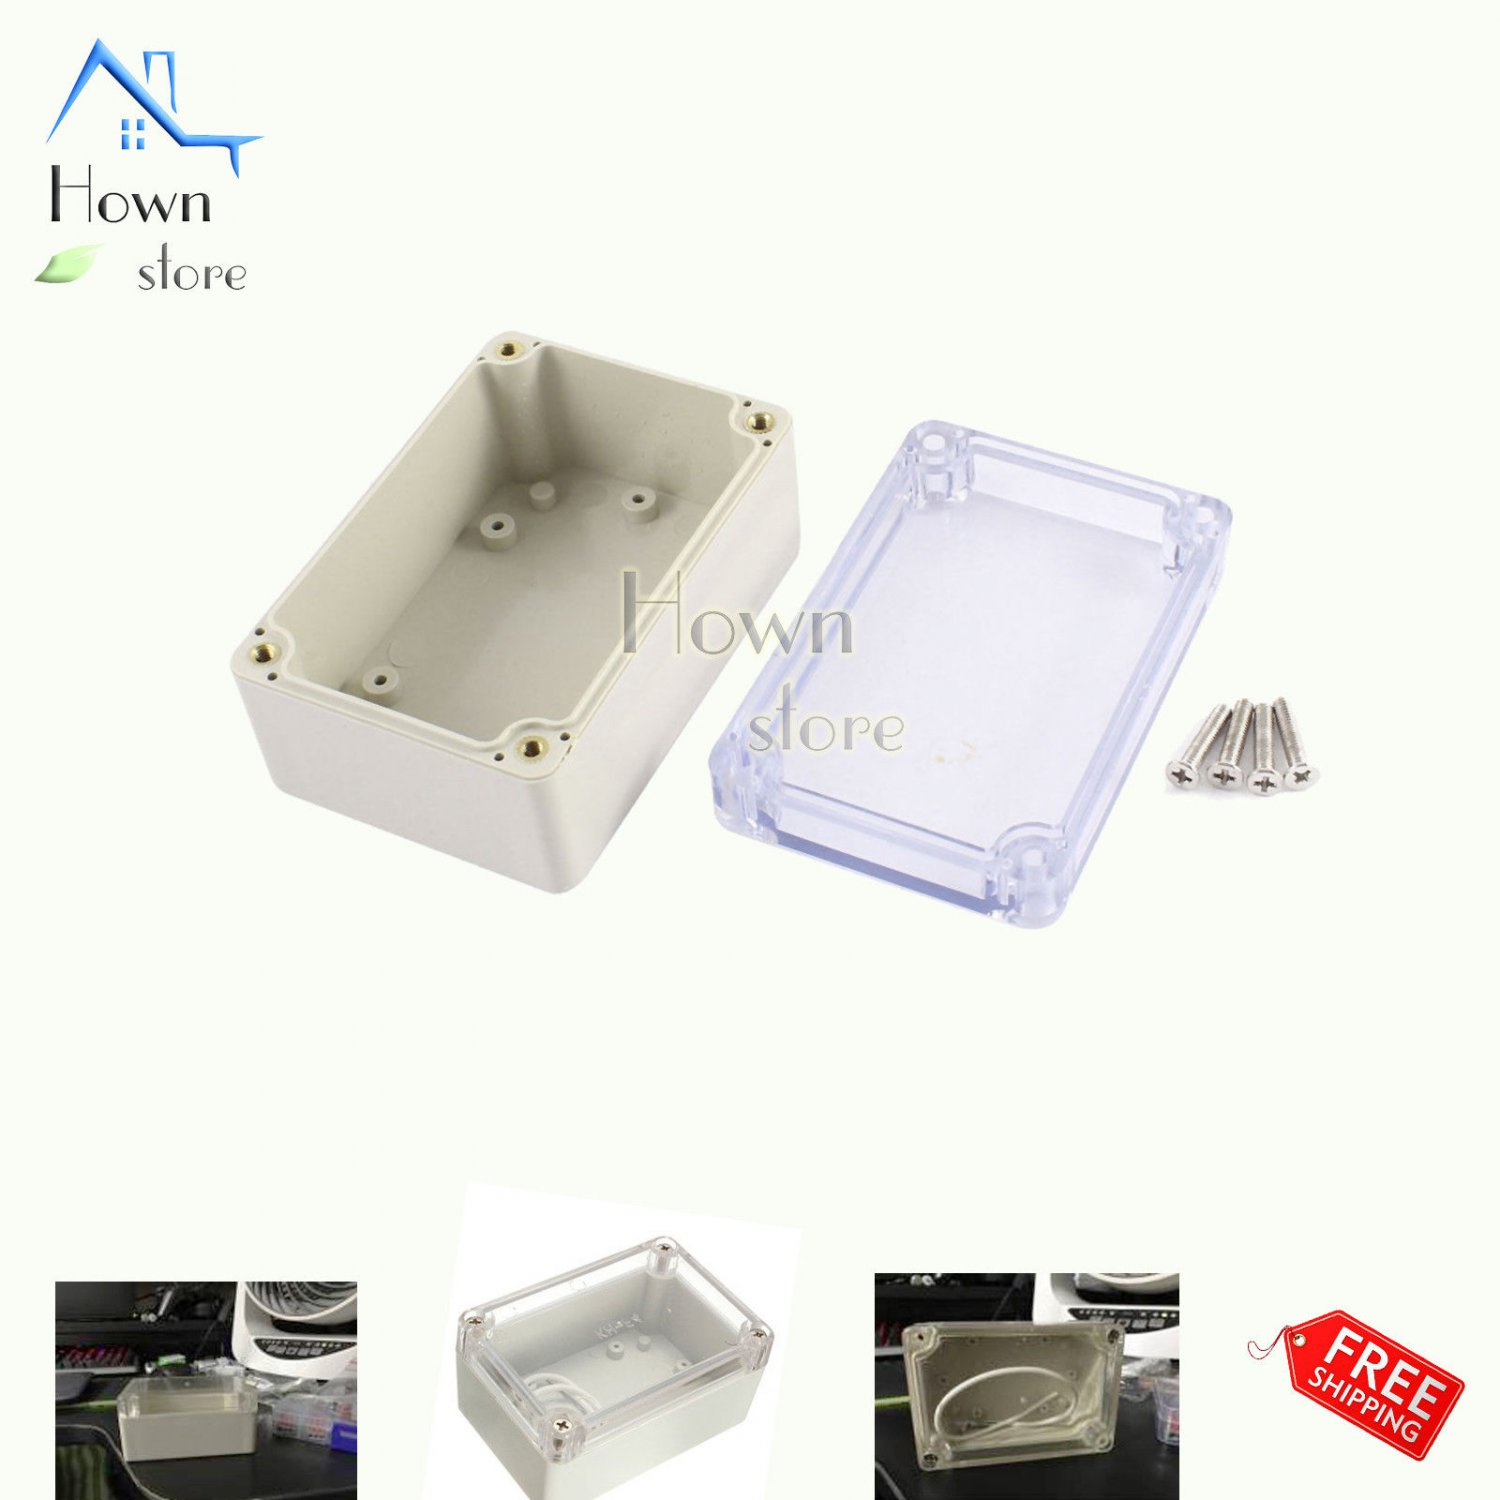 Electrical Box Case Waterproof Dustproof Enclosure DIY Electronic Wire Project